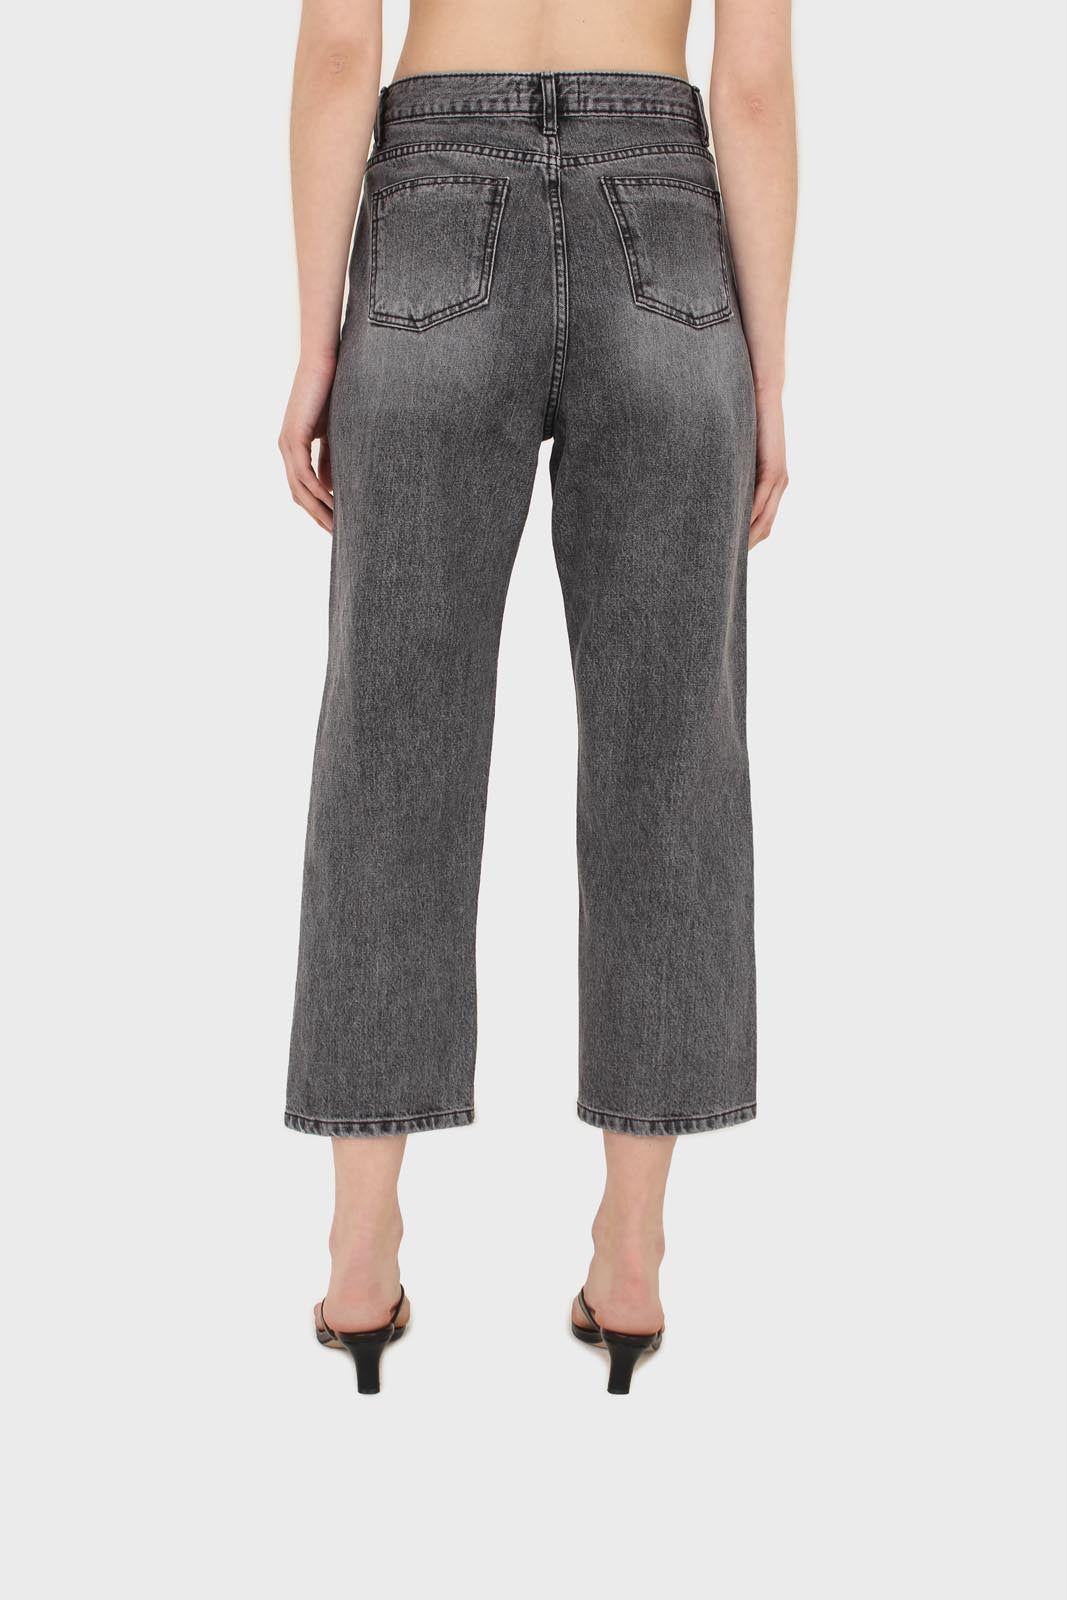 Grey washed mom jeans - 13355